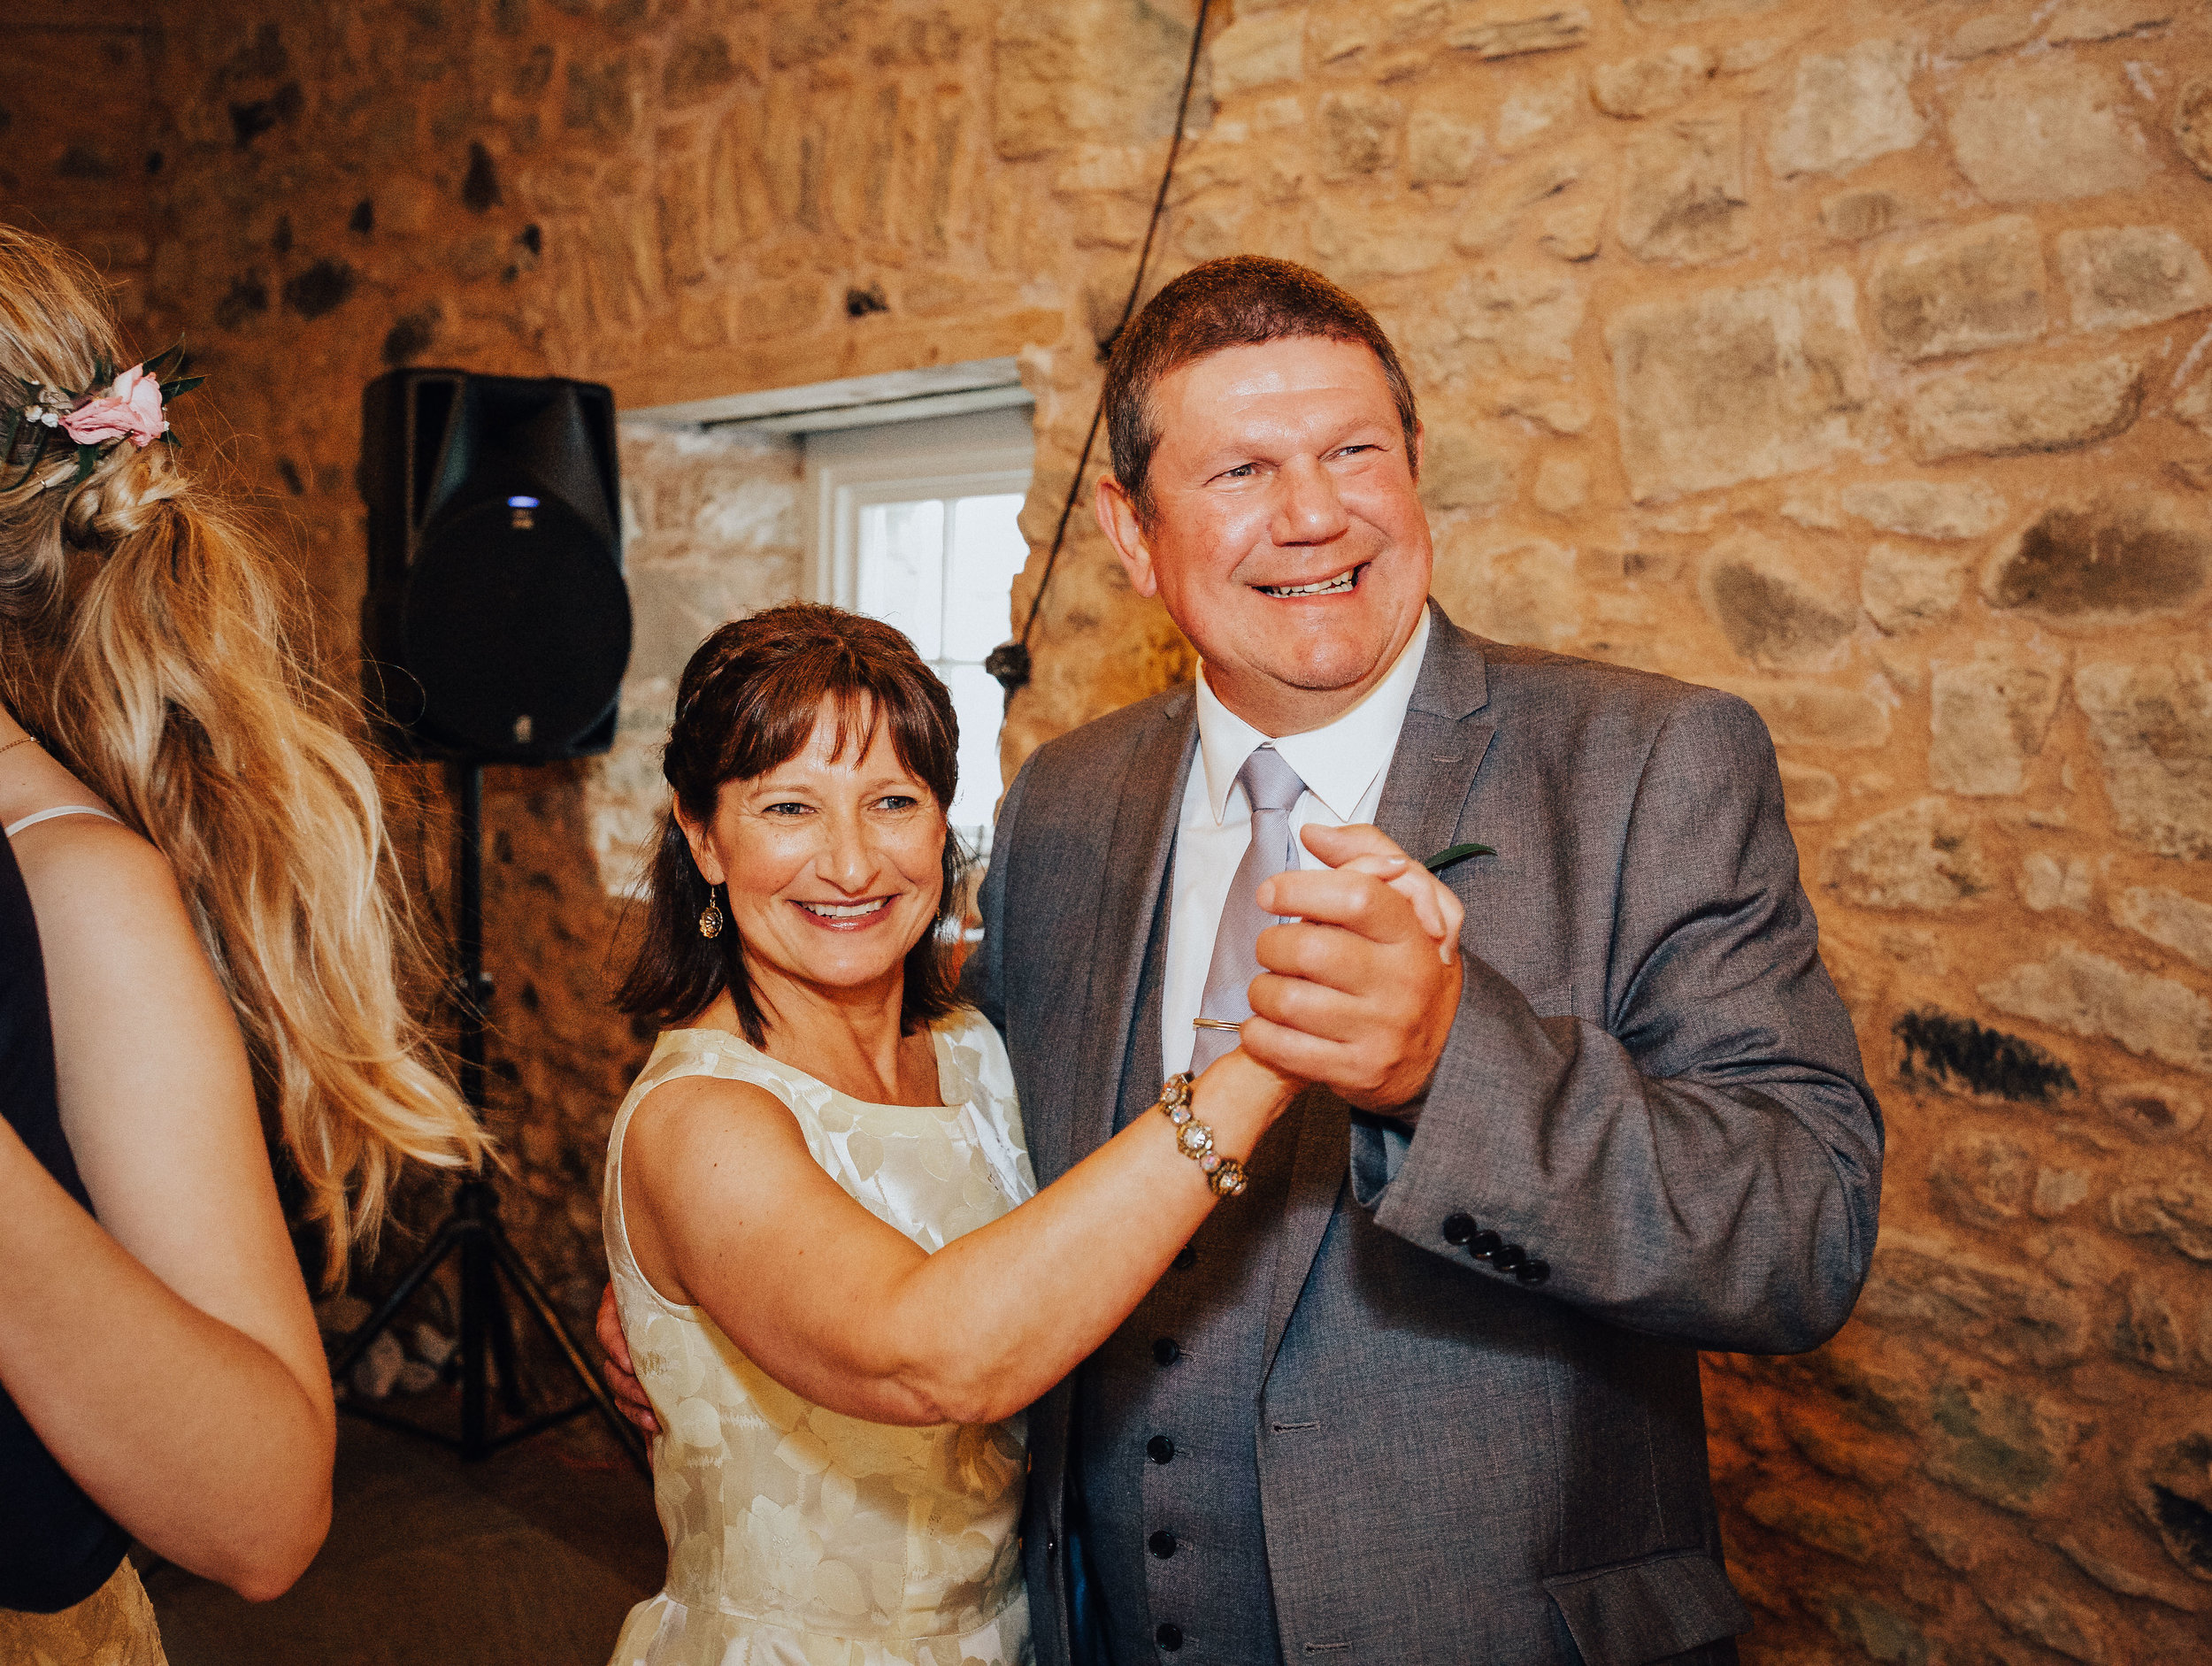 PJ_PHILLIPS_PHOTOGRAPHY_EDINBURGH_WEDDERBURN_BARNS_WEDDING_EDINBURGH_WEDDING_PHOTOGRAPHER_138.jpg